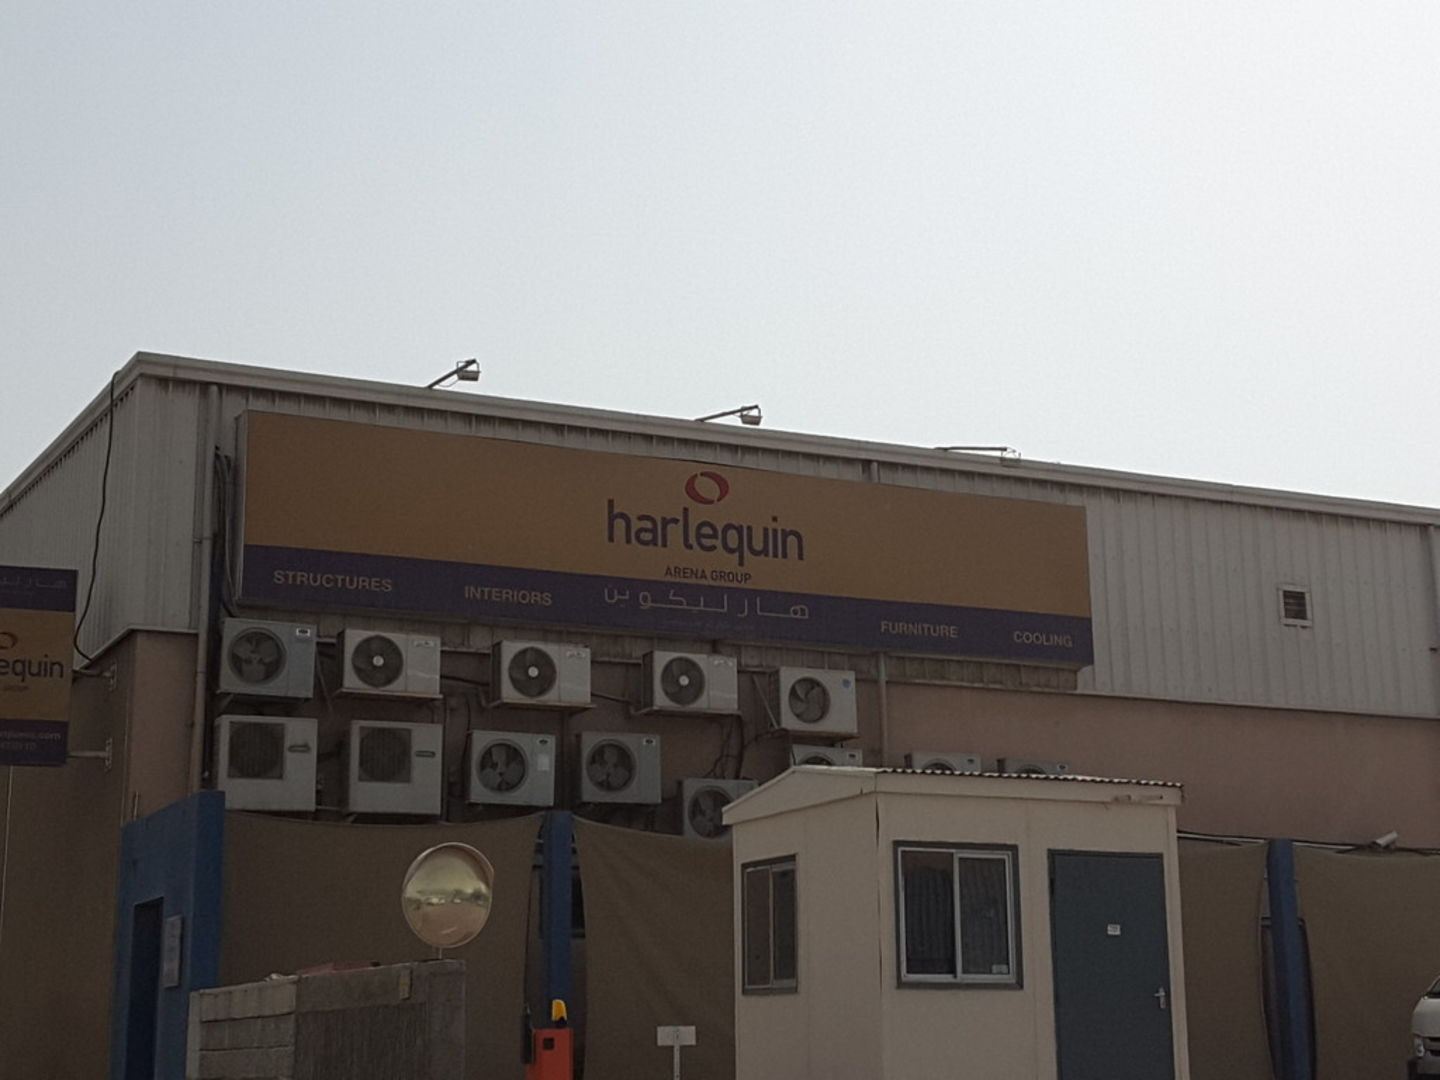 HiDubai-business-harlequin-marquees-construction-heavy-industries-architects-design-services-al-quoz-industrial-1-dubai-2